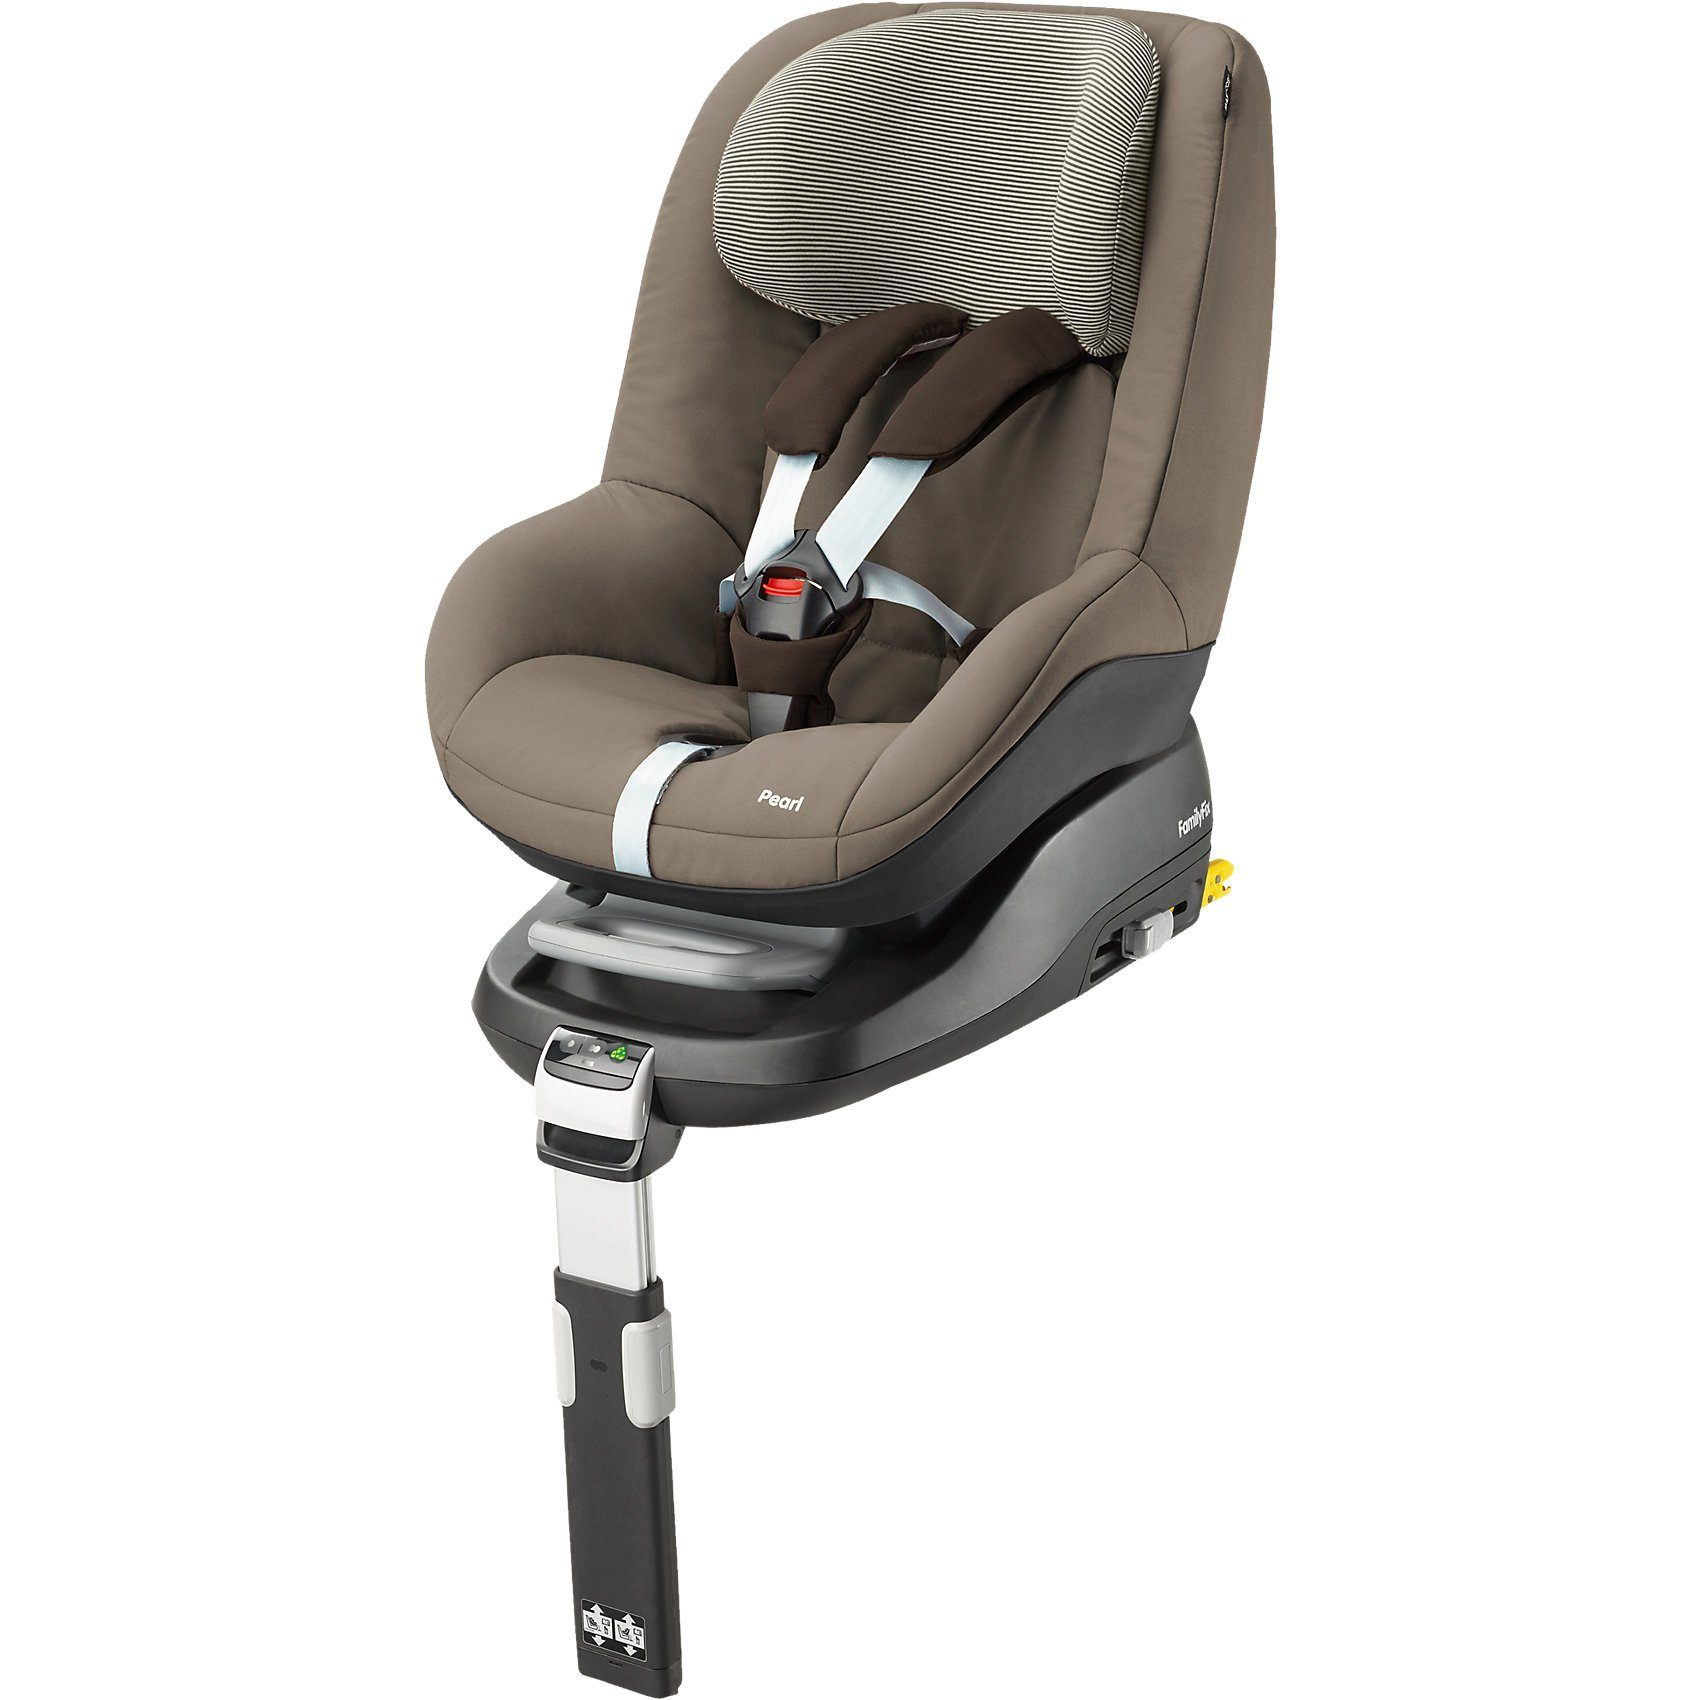 Maxi-Cosi Auto-Kindersitz Pearl, earth brown, 2017